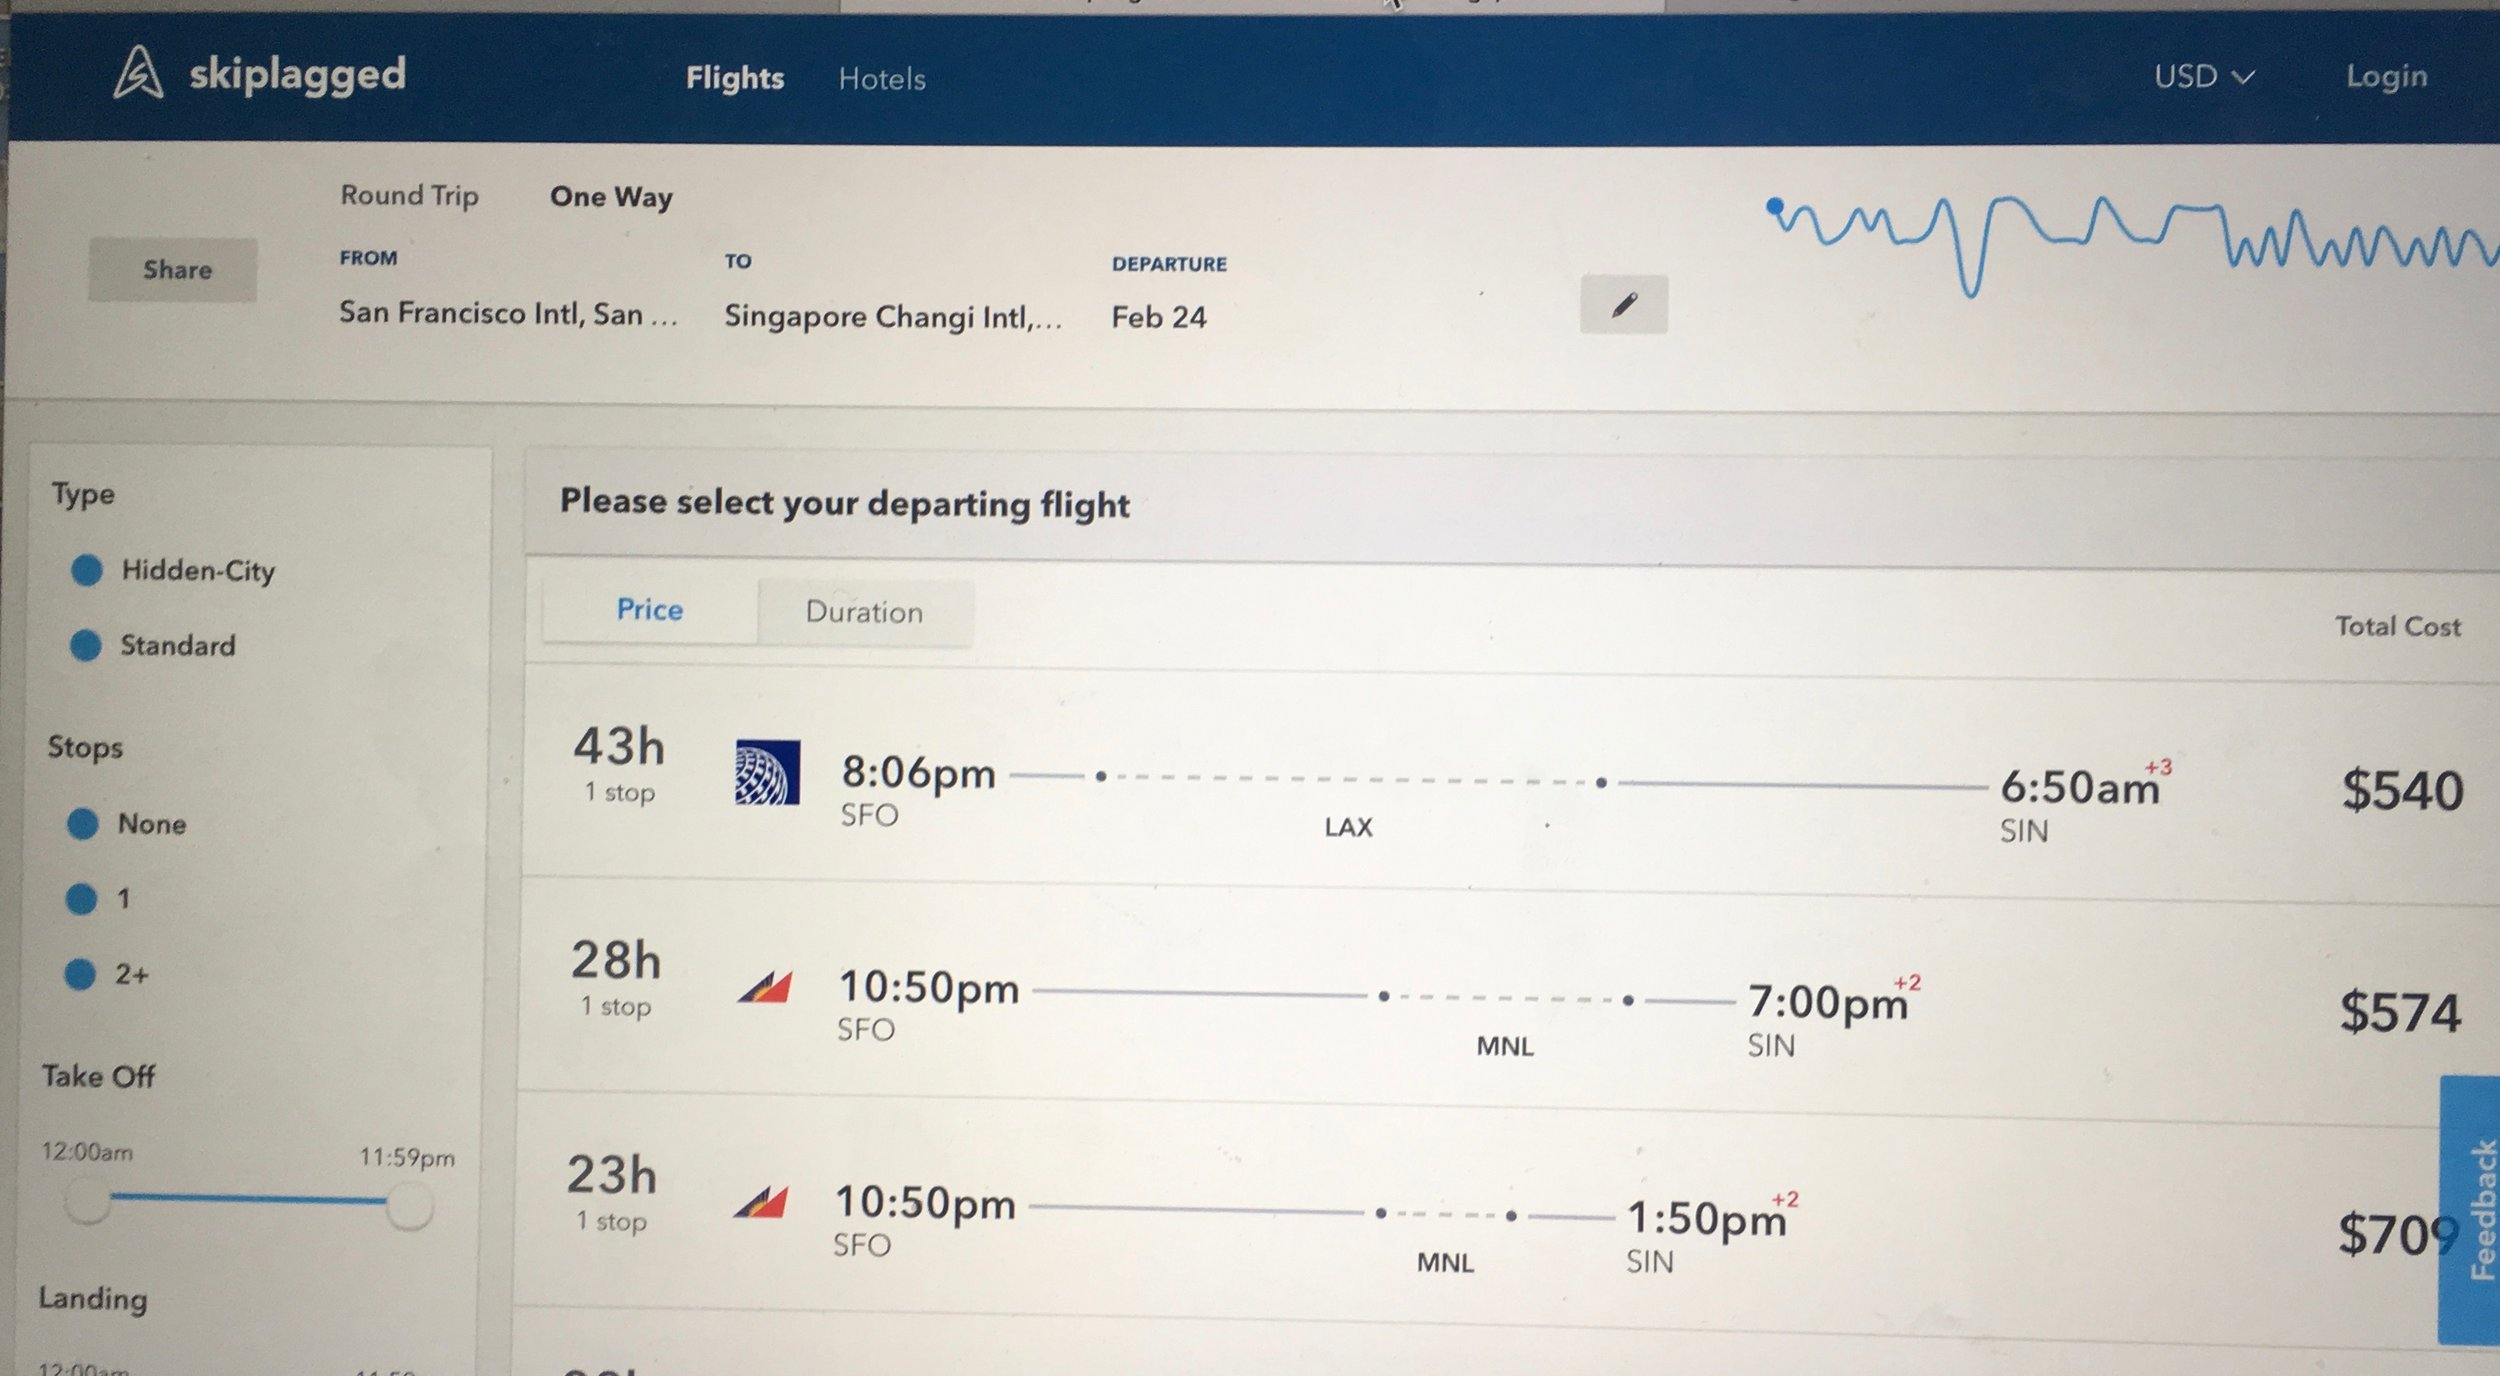 Skiplagged search - The blue line in the upper right shows price changing with date of travel.